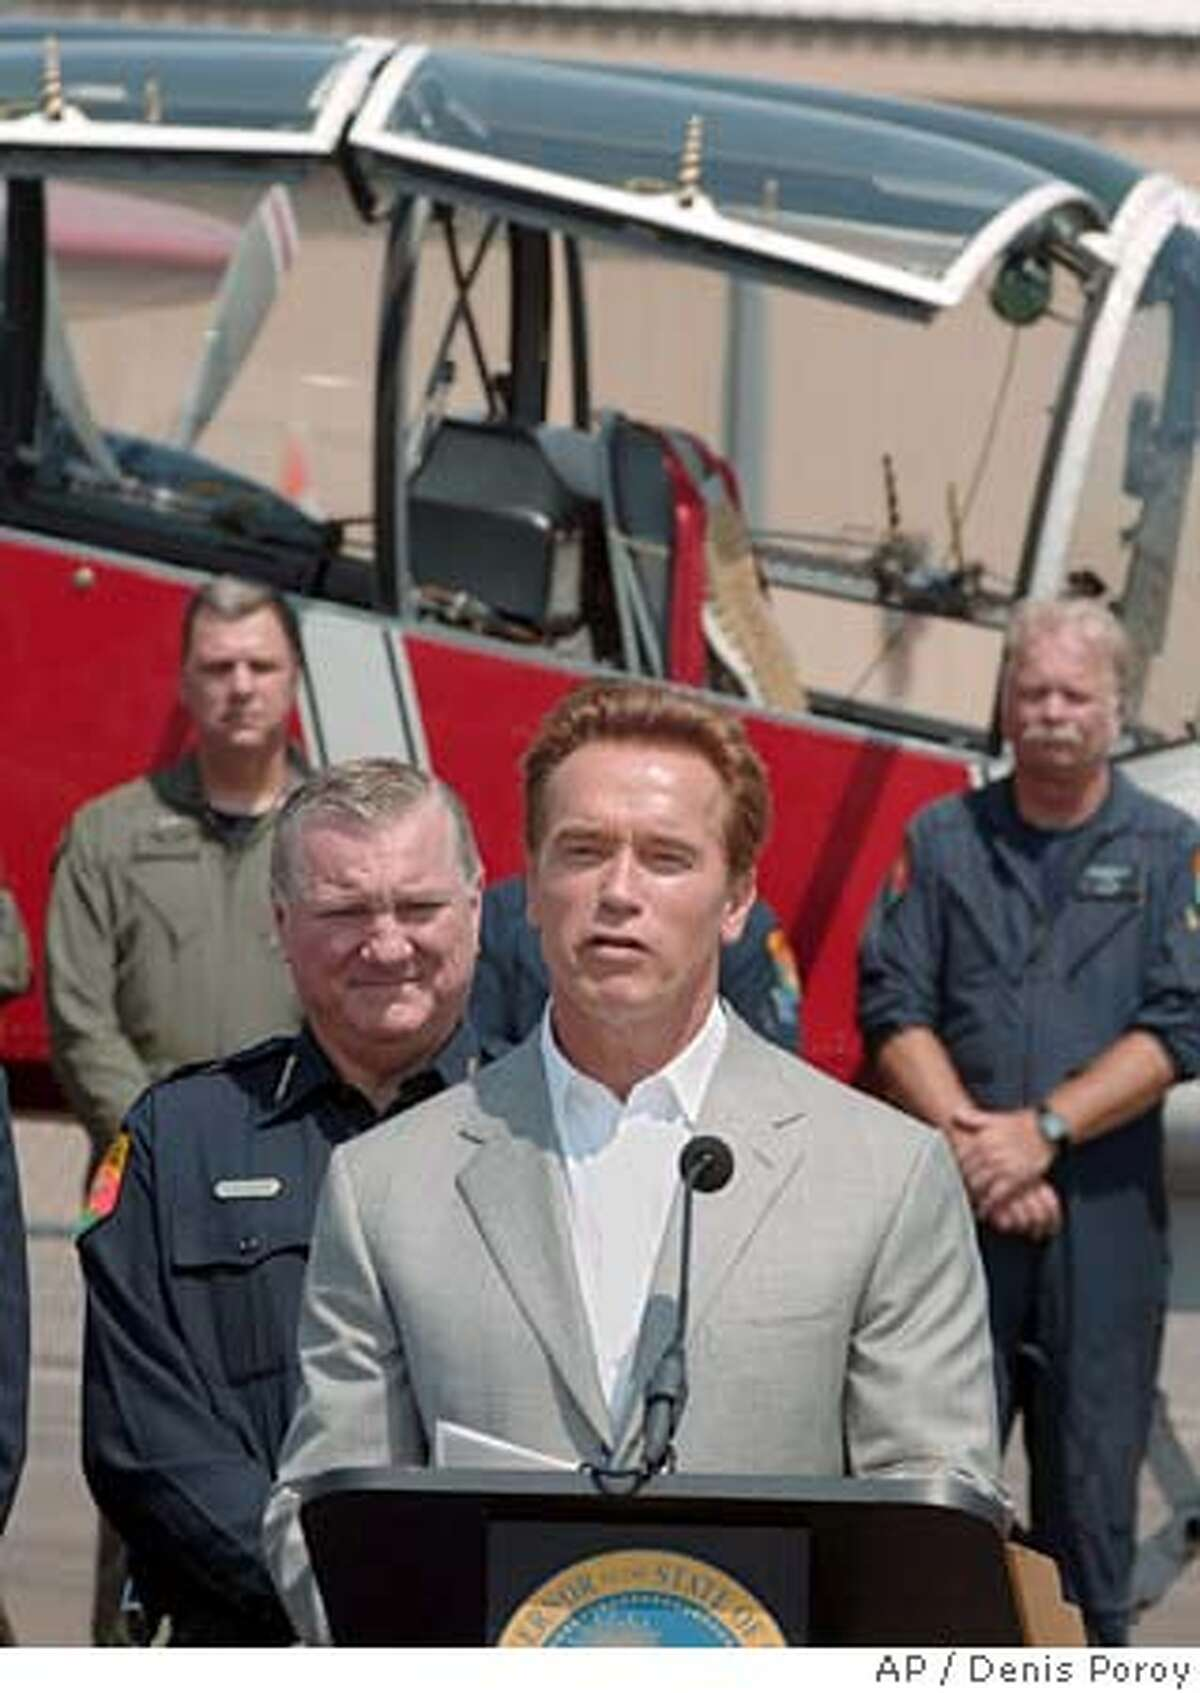 California Gov. Arnold Schwarzenegger speaks at a news conference at Gillespie Field in El Cajon, Calif. held to announce the signing of an executive order to expand statewide firefighting efforts as Dale Geldert, director of Forestry and Fire Protection, left, looks on Wednesday, July 20, 2005. Behind him is a firefighting airplane and its crew. (AP Photo/Denis Poroy) Ran on: 07-21-2005